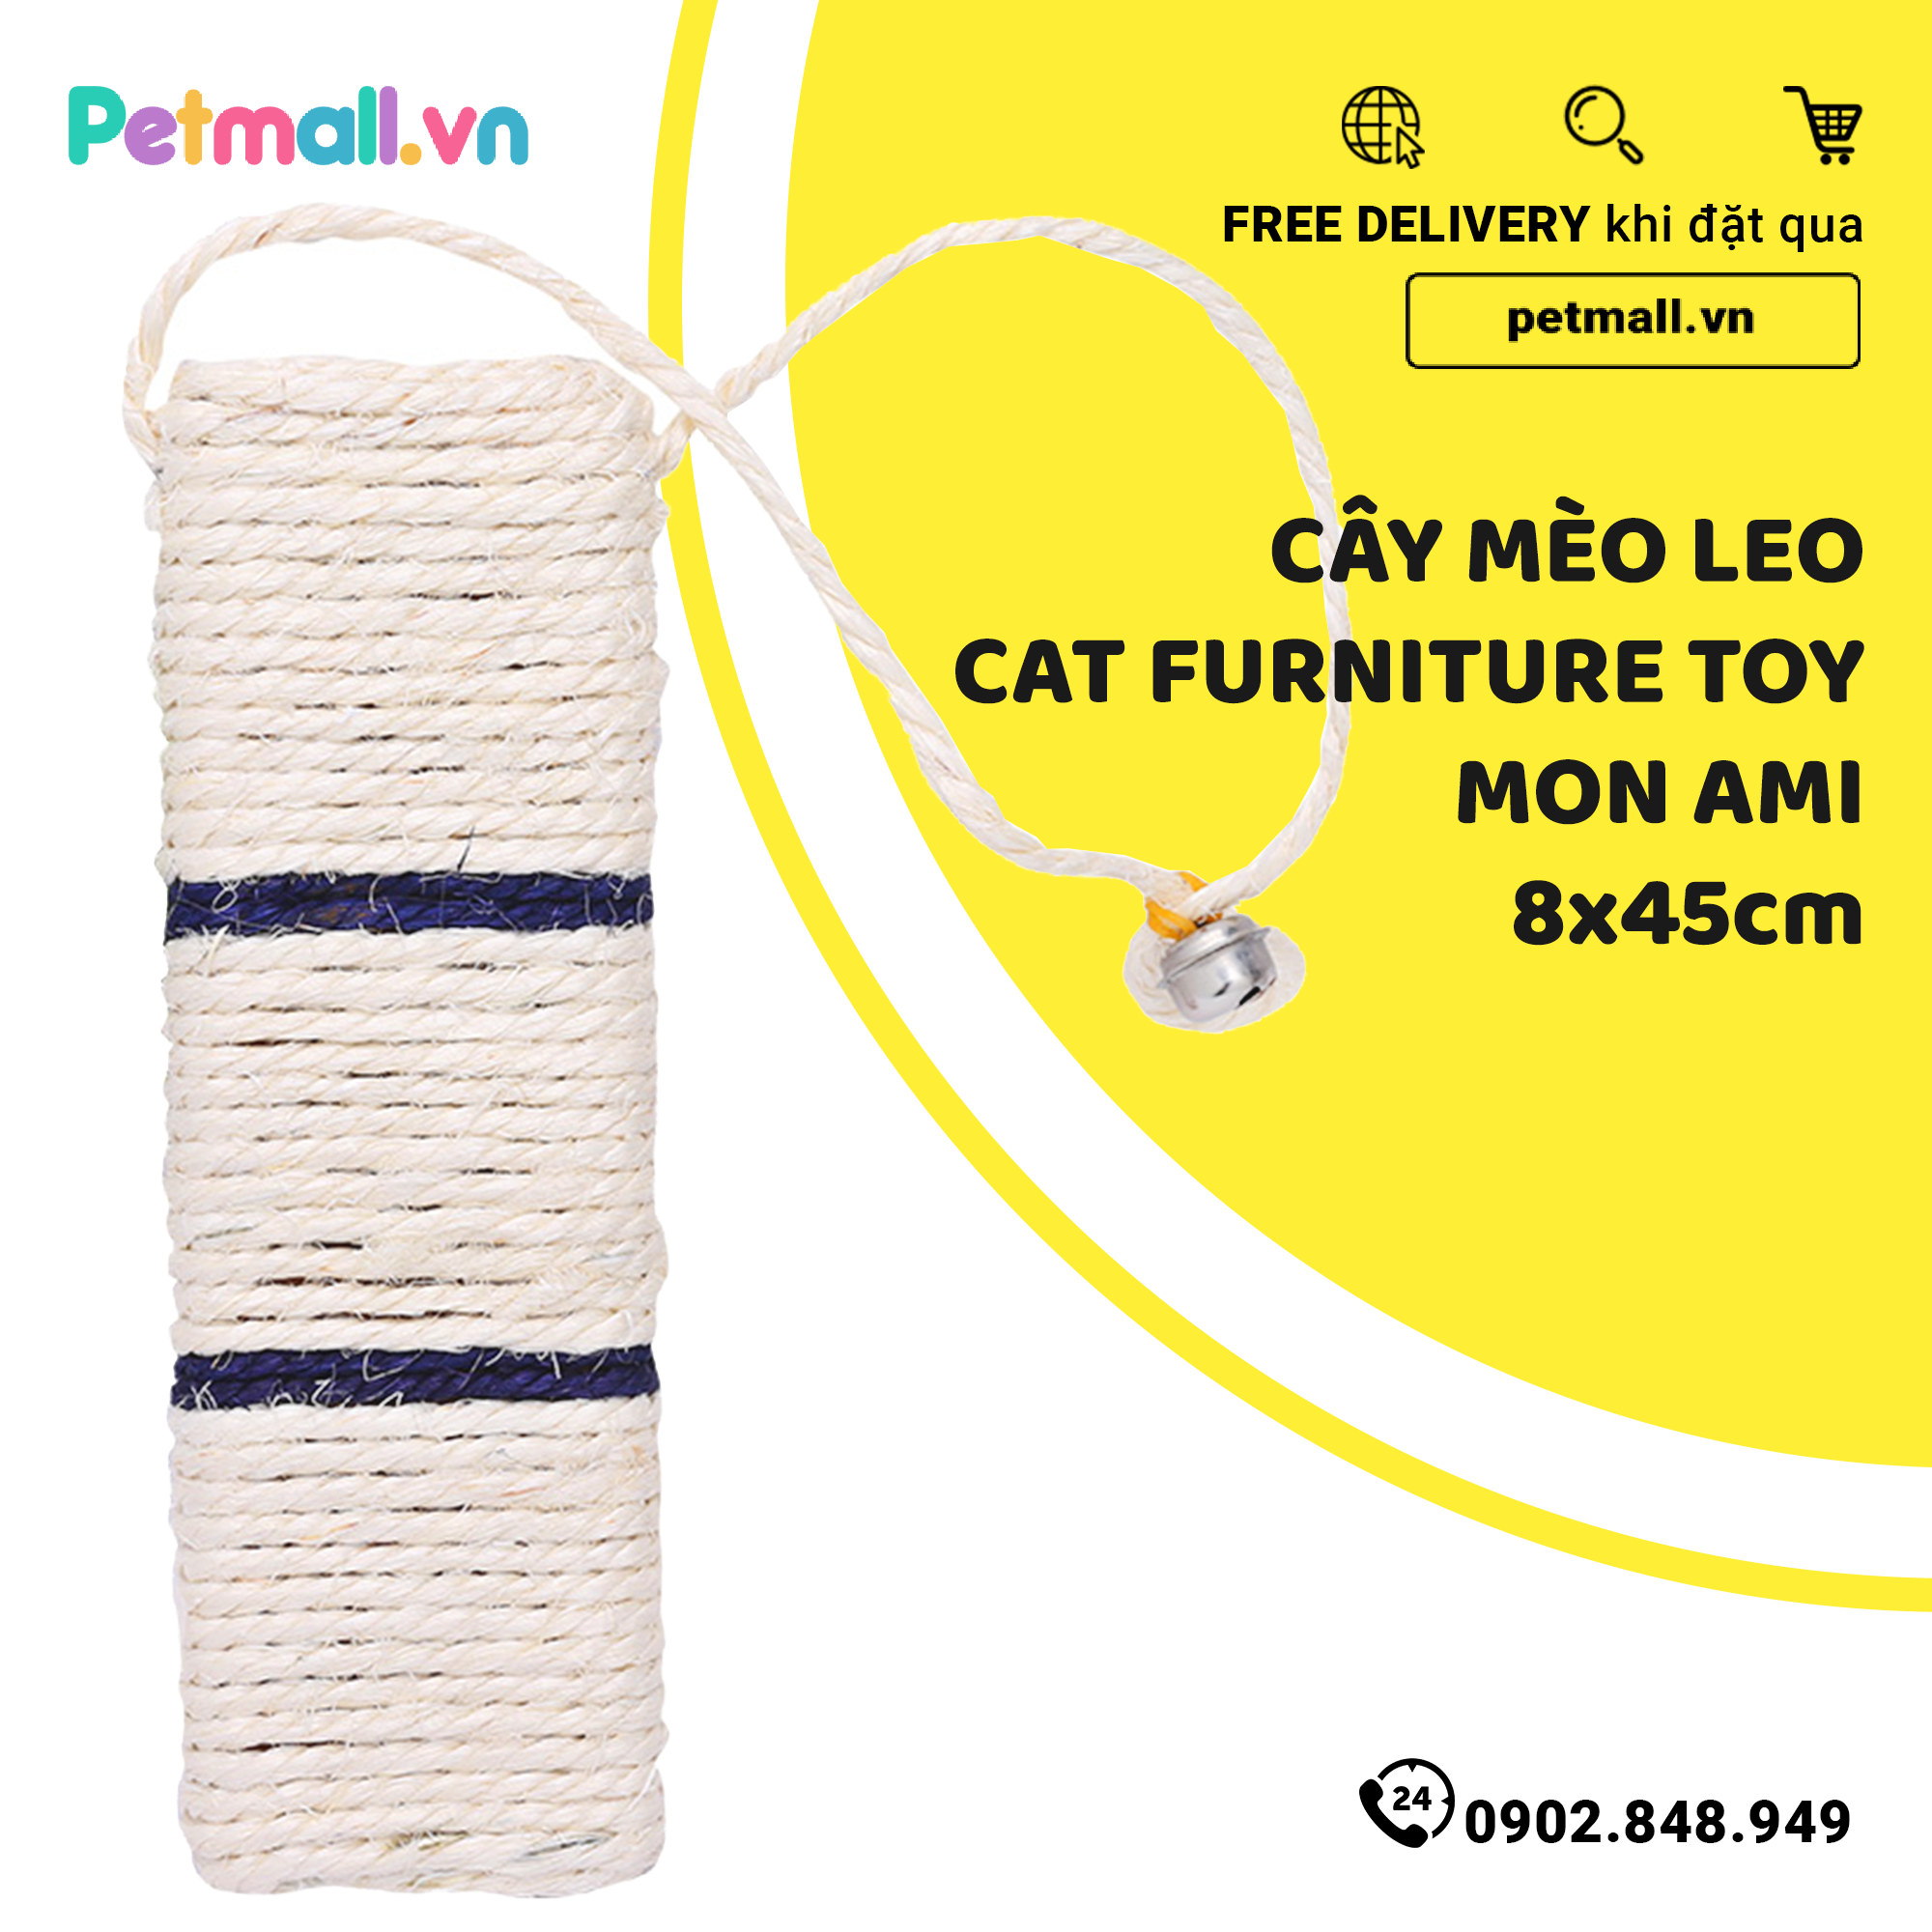 Cây mèo leo Cat Furniture Toy Mon Ami - 8x45cm